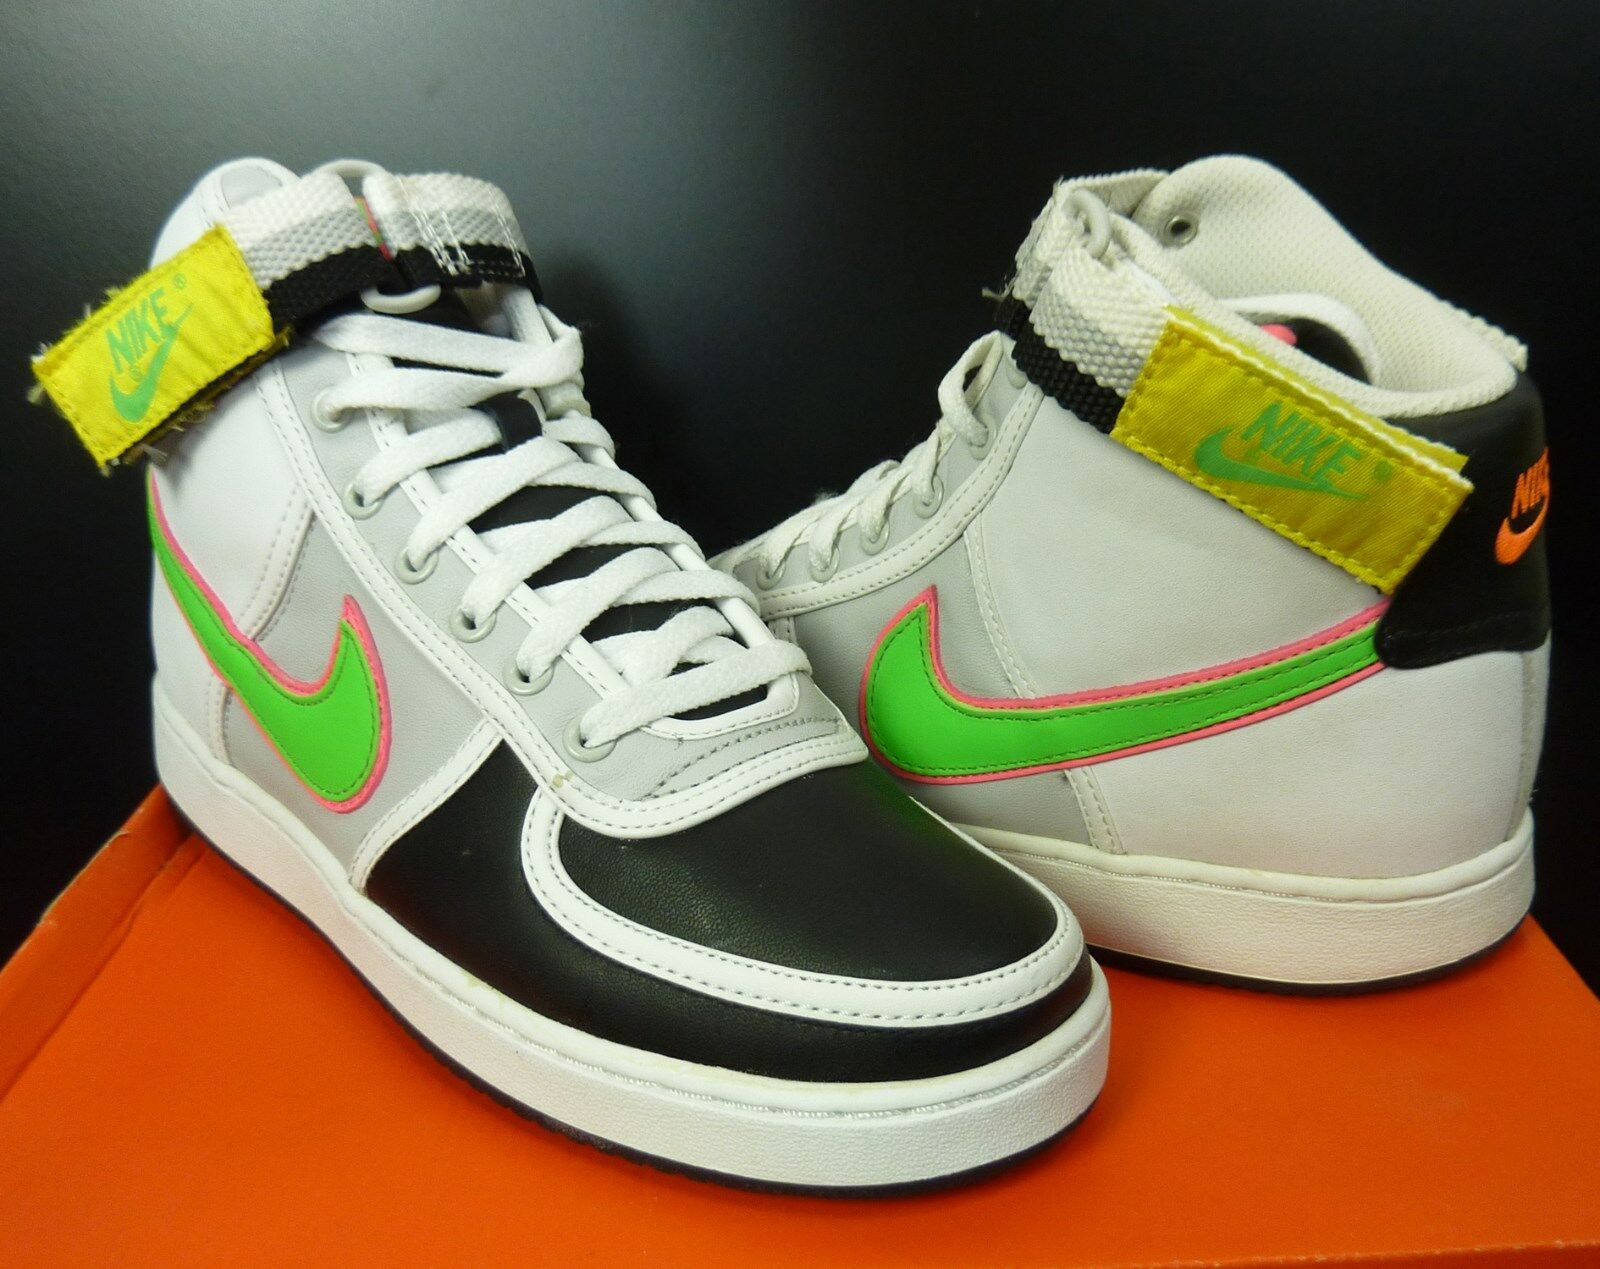 NEW NIKE VANDAL HI HIGH LEATHER SHOES SNEAKERS DEADSTOCK SIZE 8.5 US